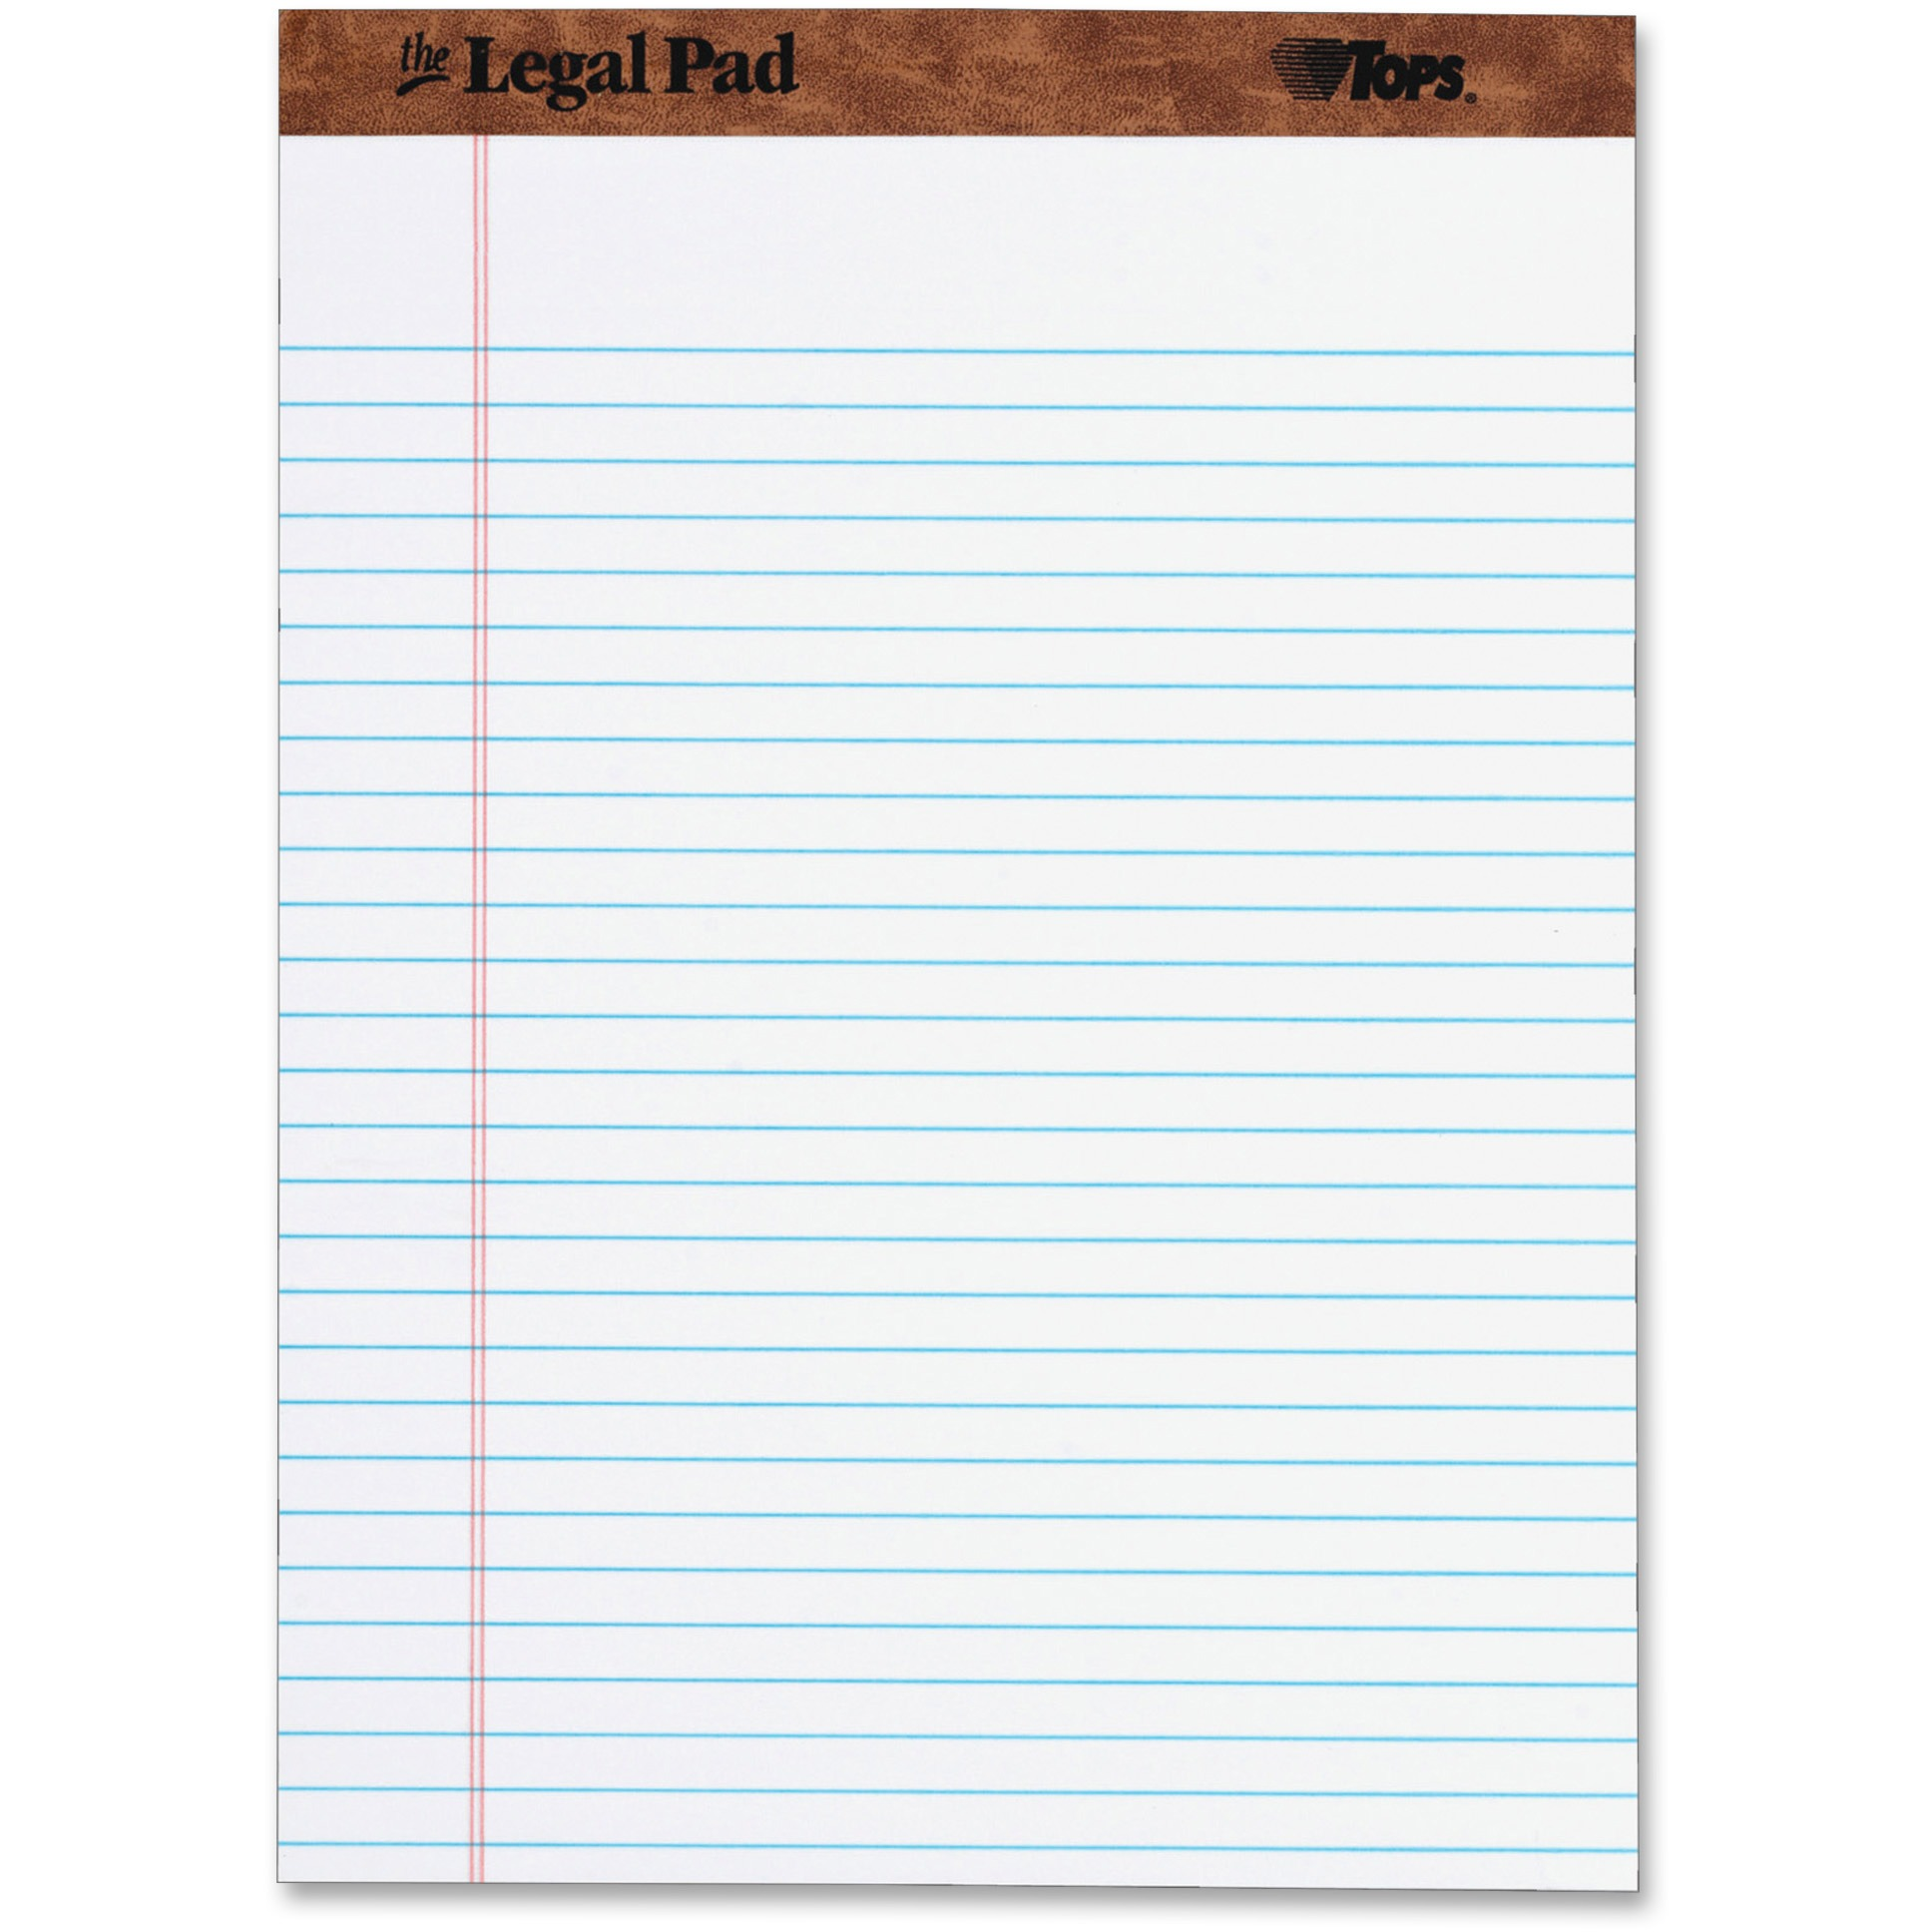 TOPS The Legal Pad Writing Pads, Legal Rule, 50 Sheets, White, (7533)